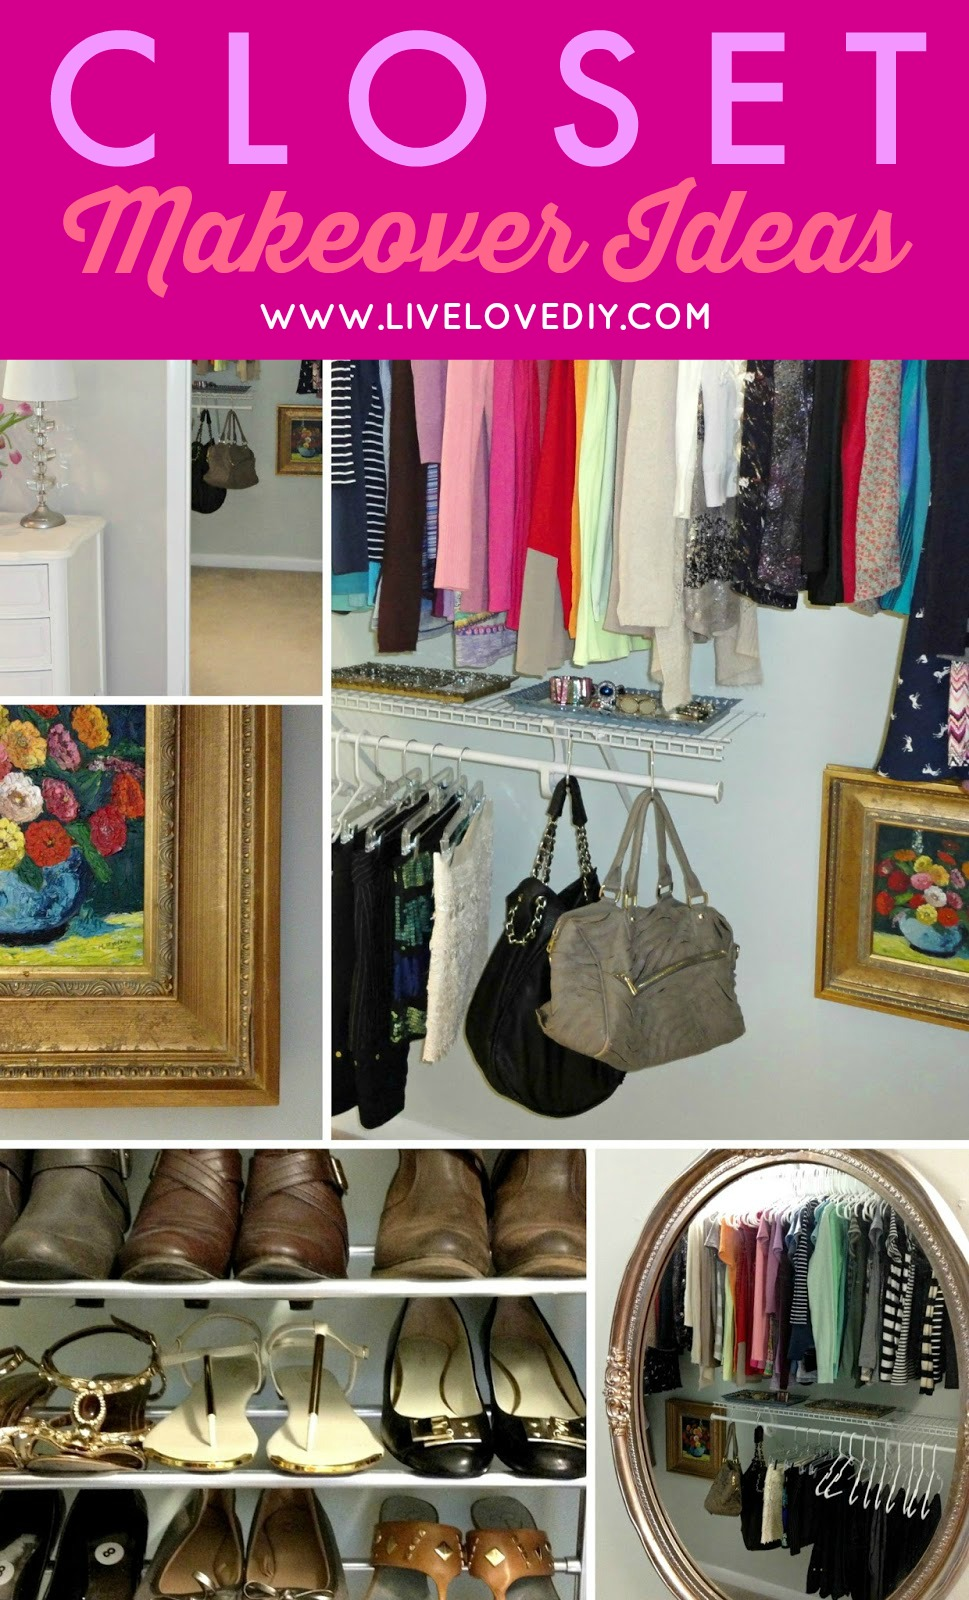 The $50 Closet Makeover